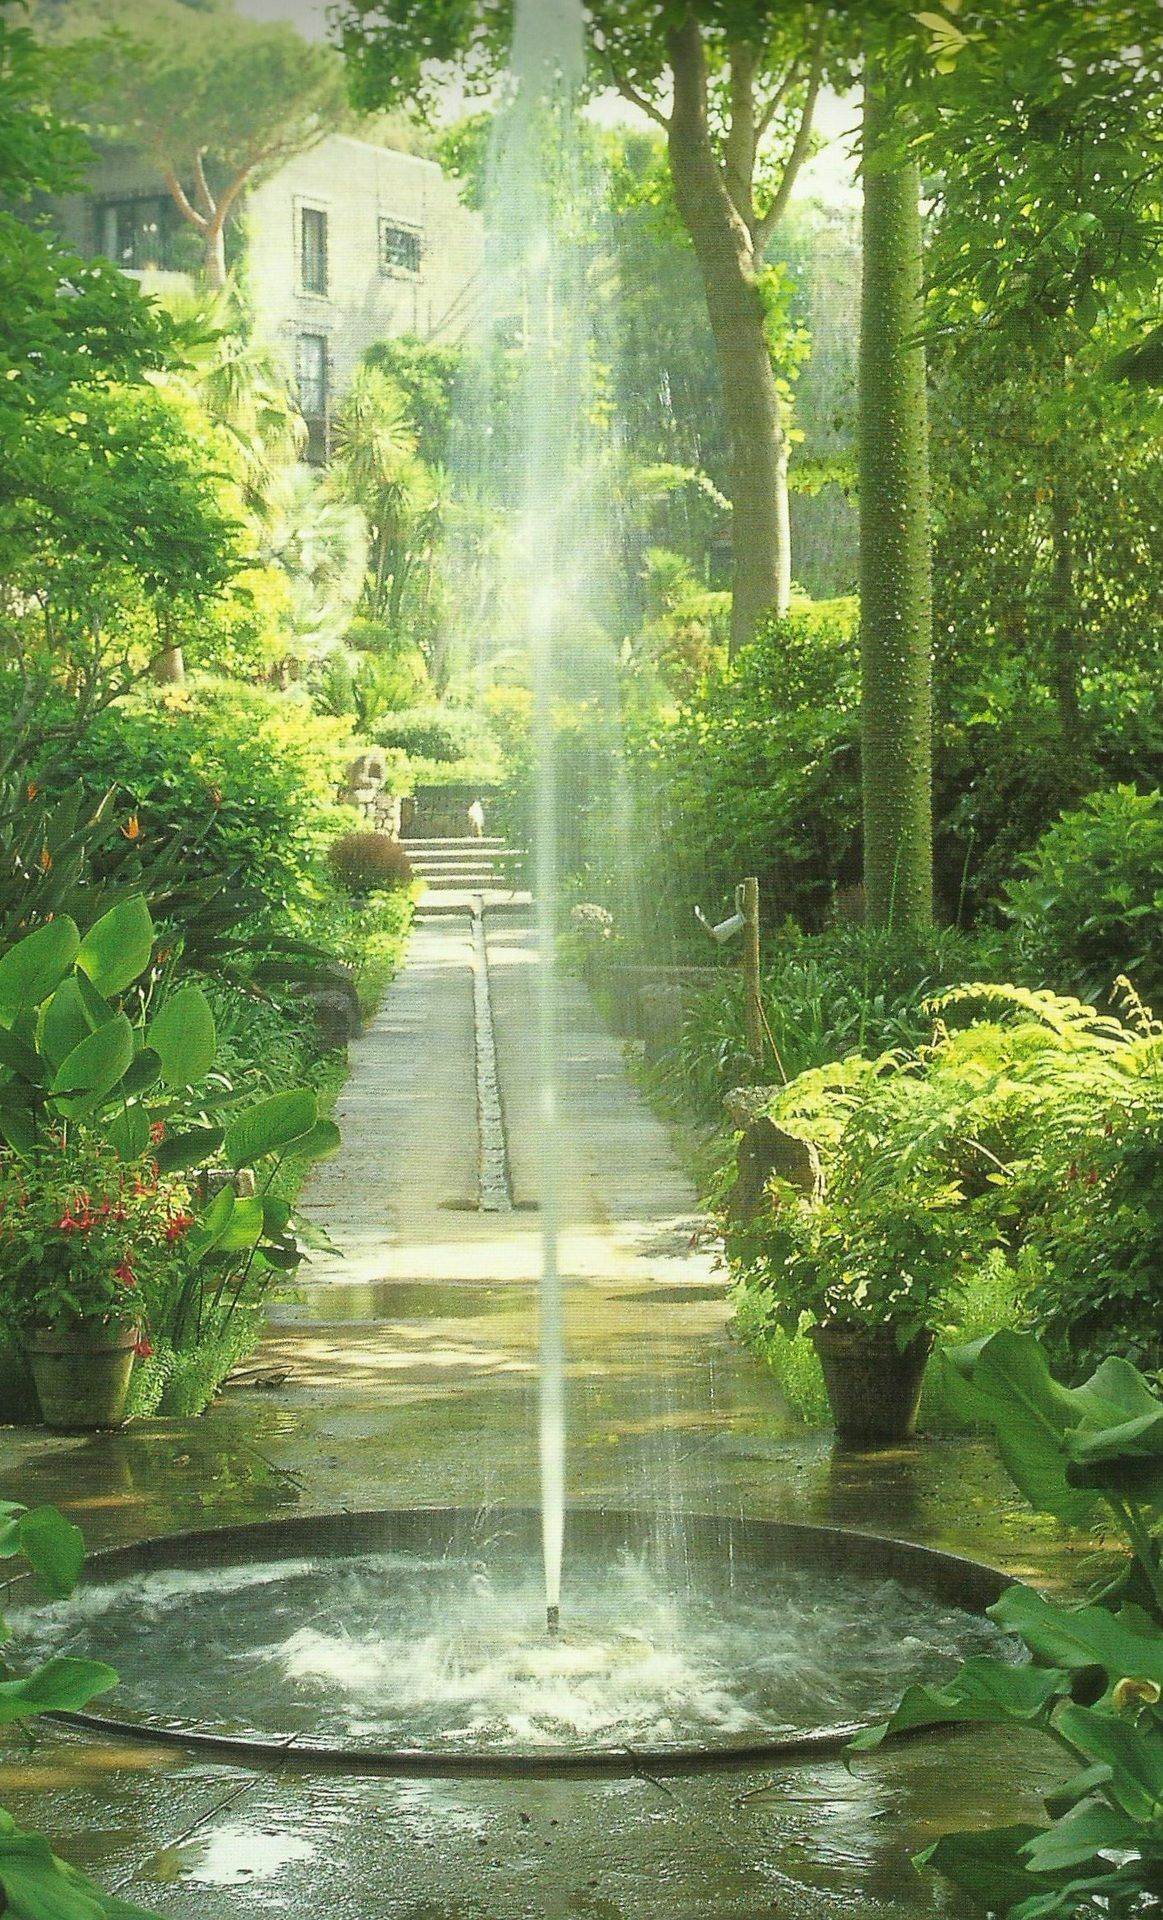 Water fountains masters - Beautiful Water Feature Fountain In A Green Lush Garden